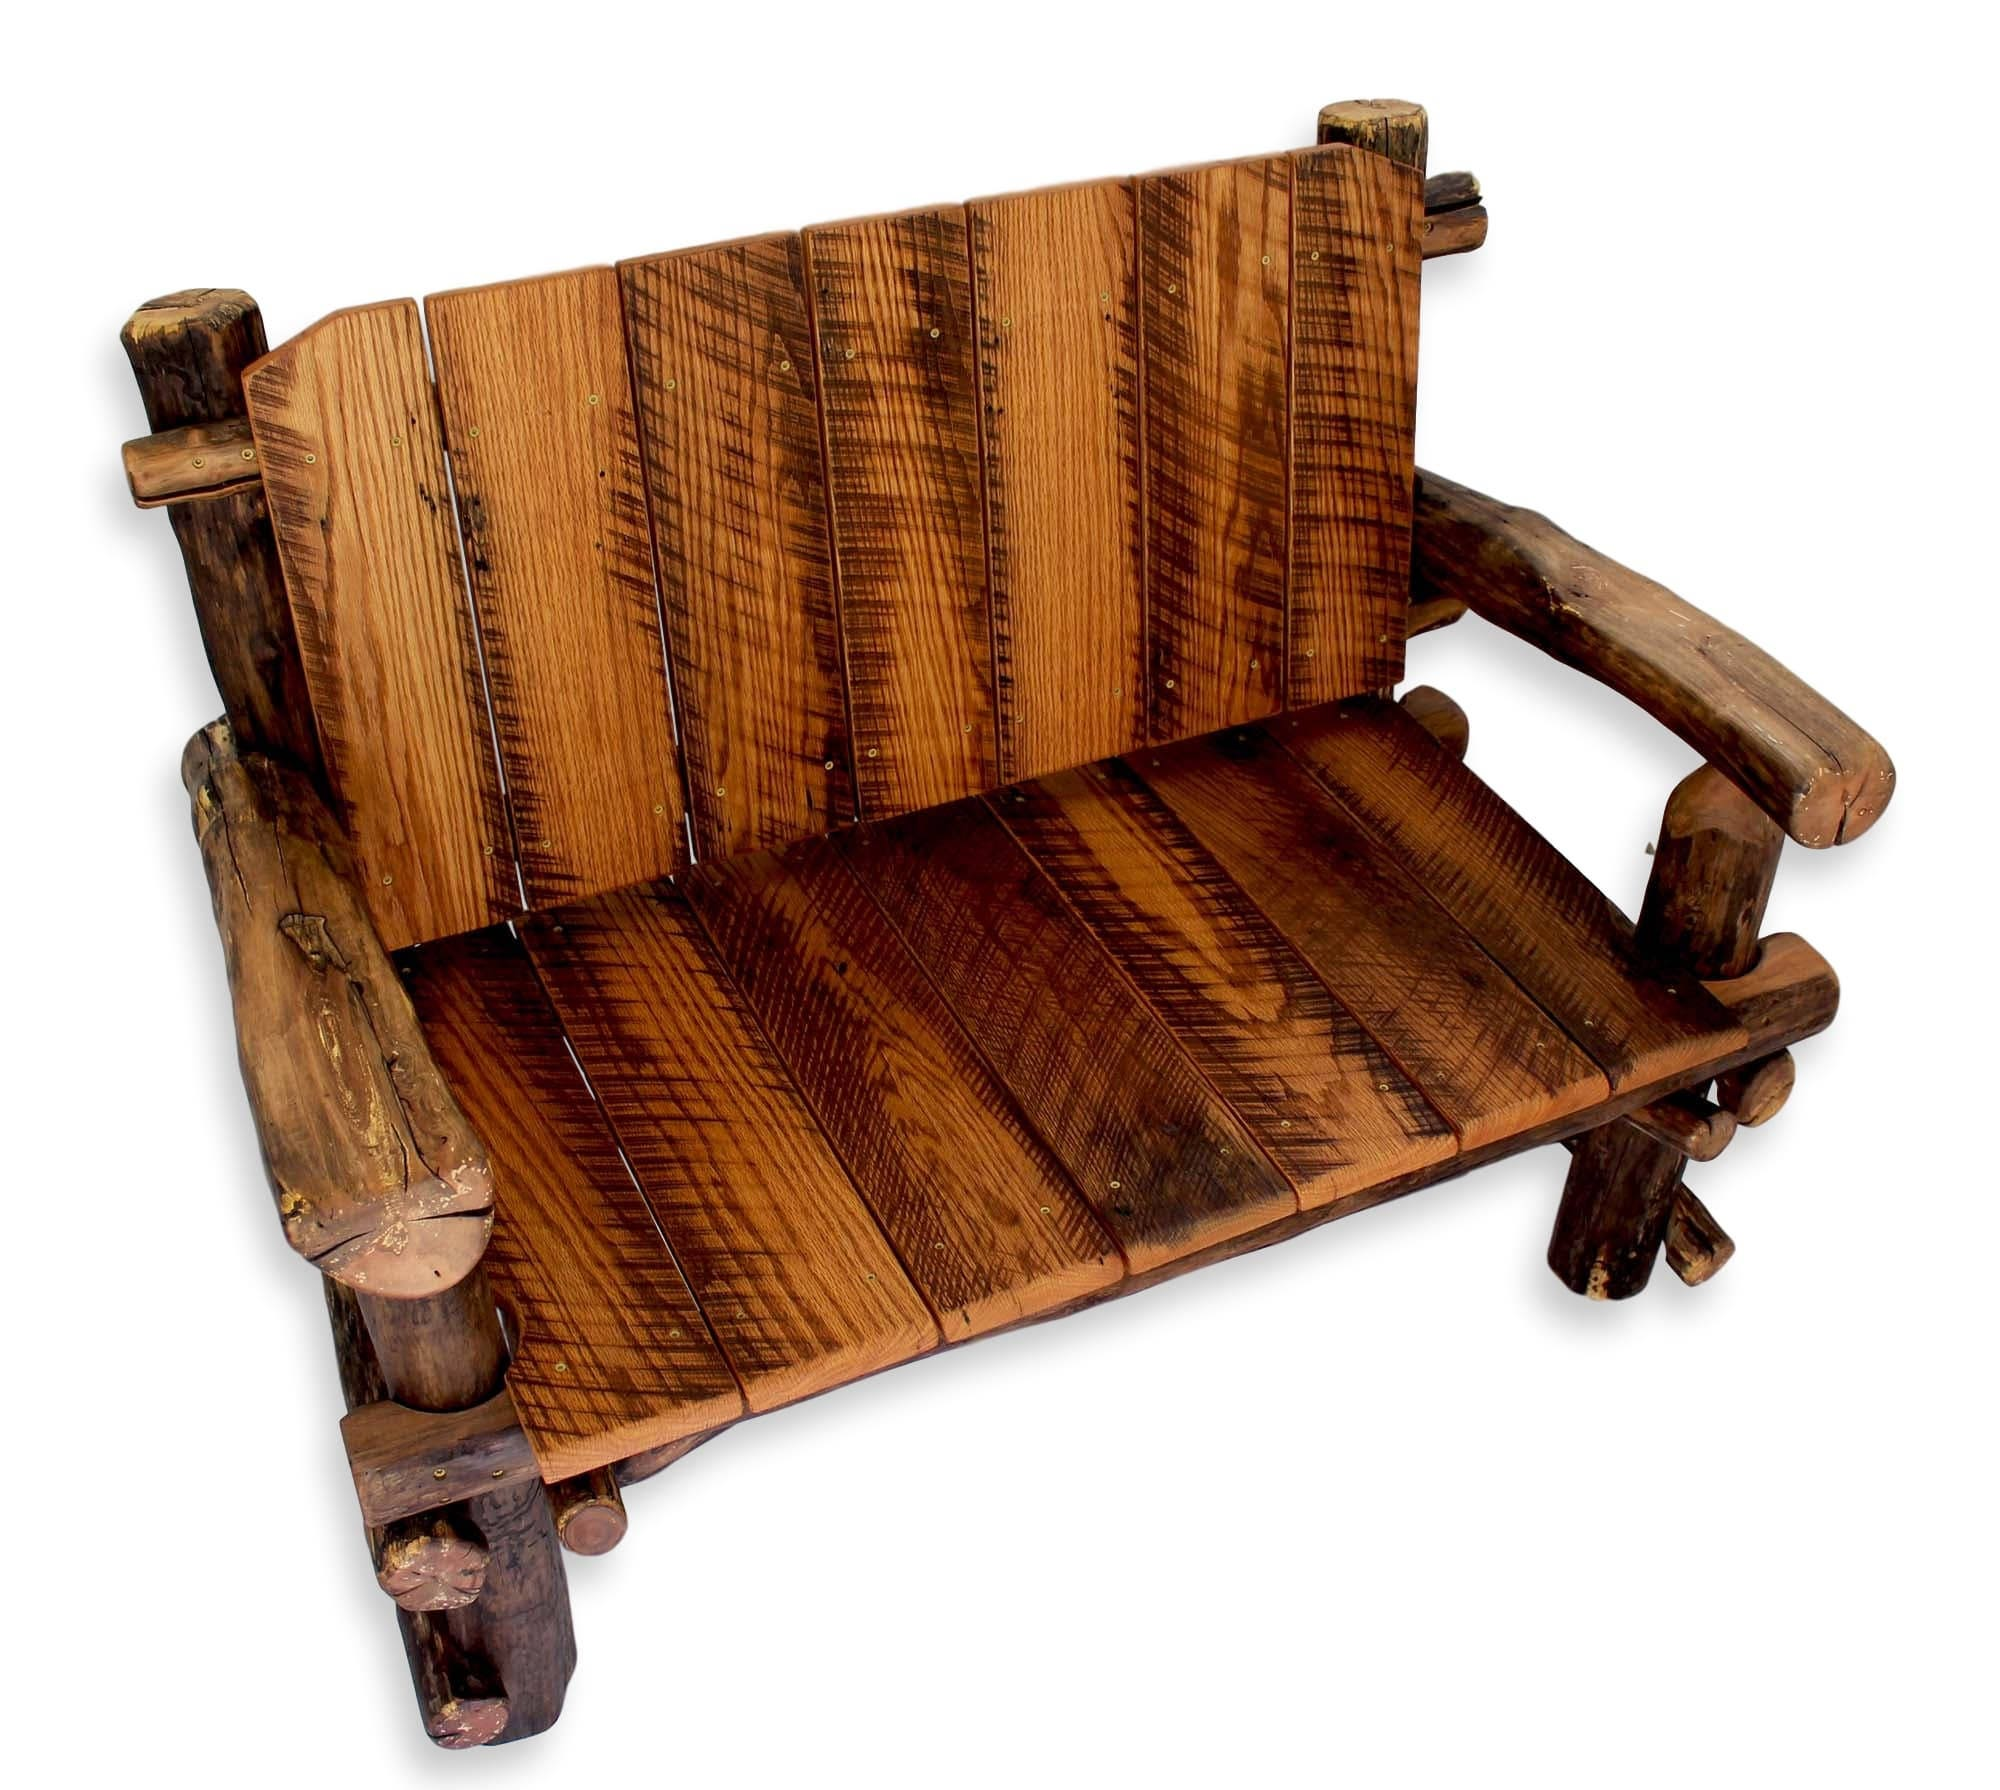 Rustic wood bench reclaimed wooden log